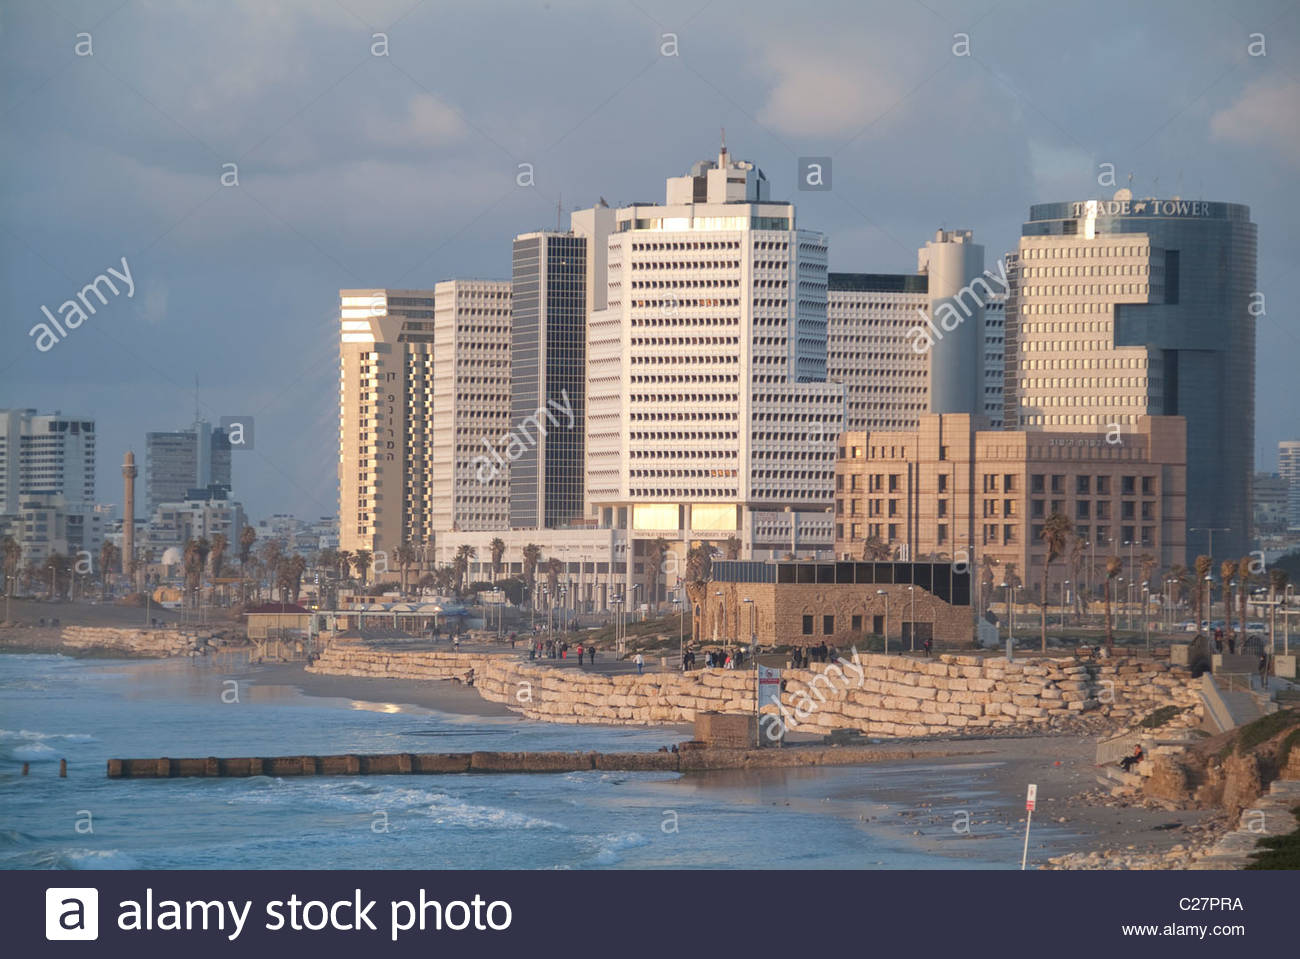 Tel Aviv skyline from the Jaffa neighborhood. - Stock Image